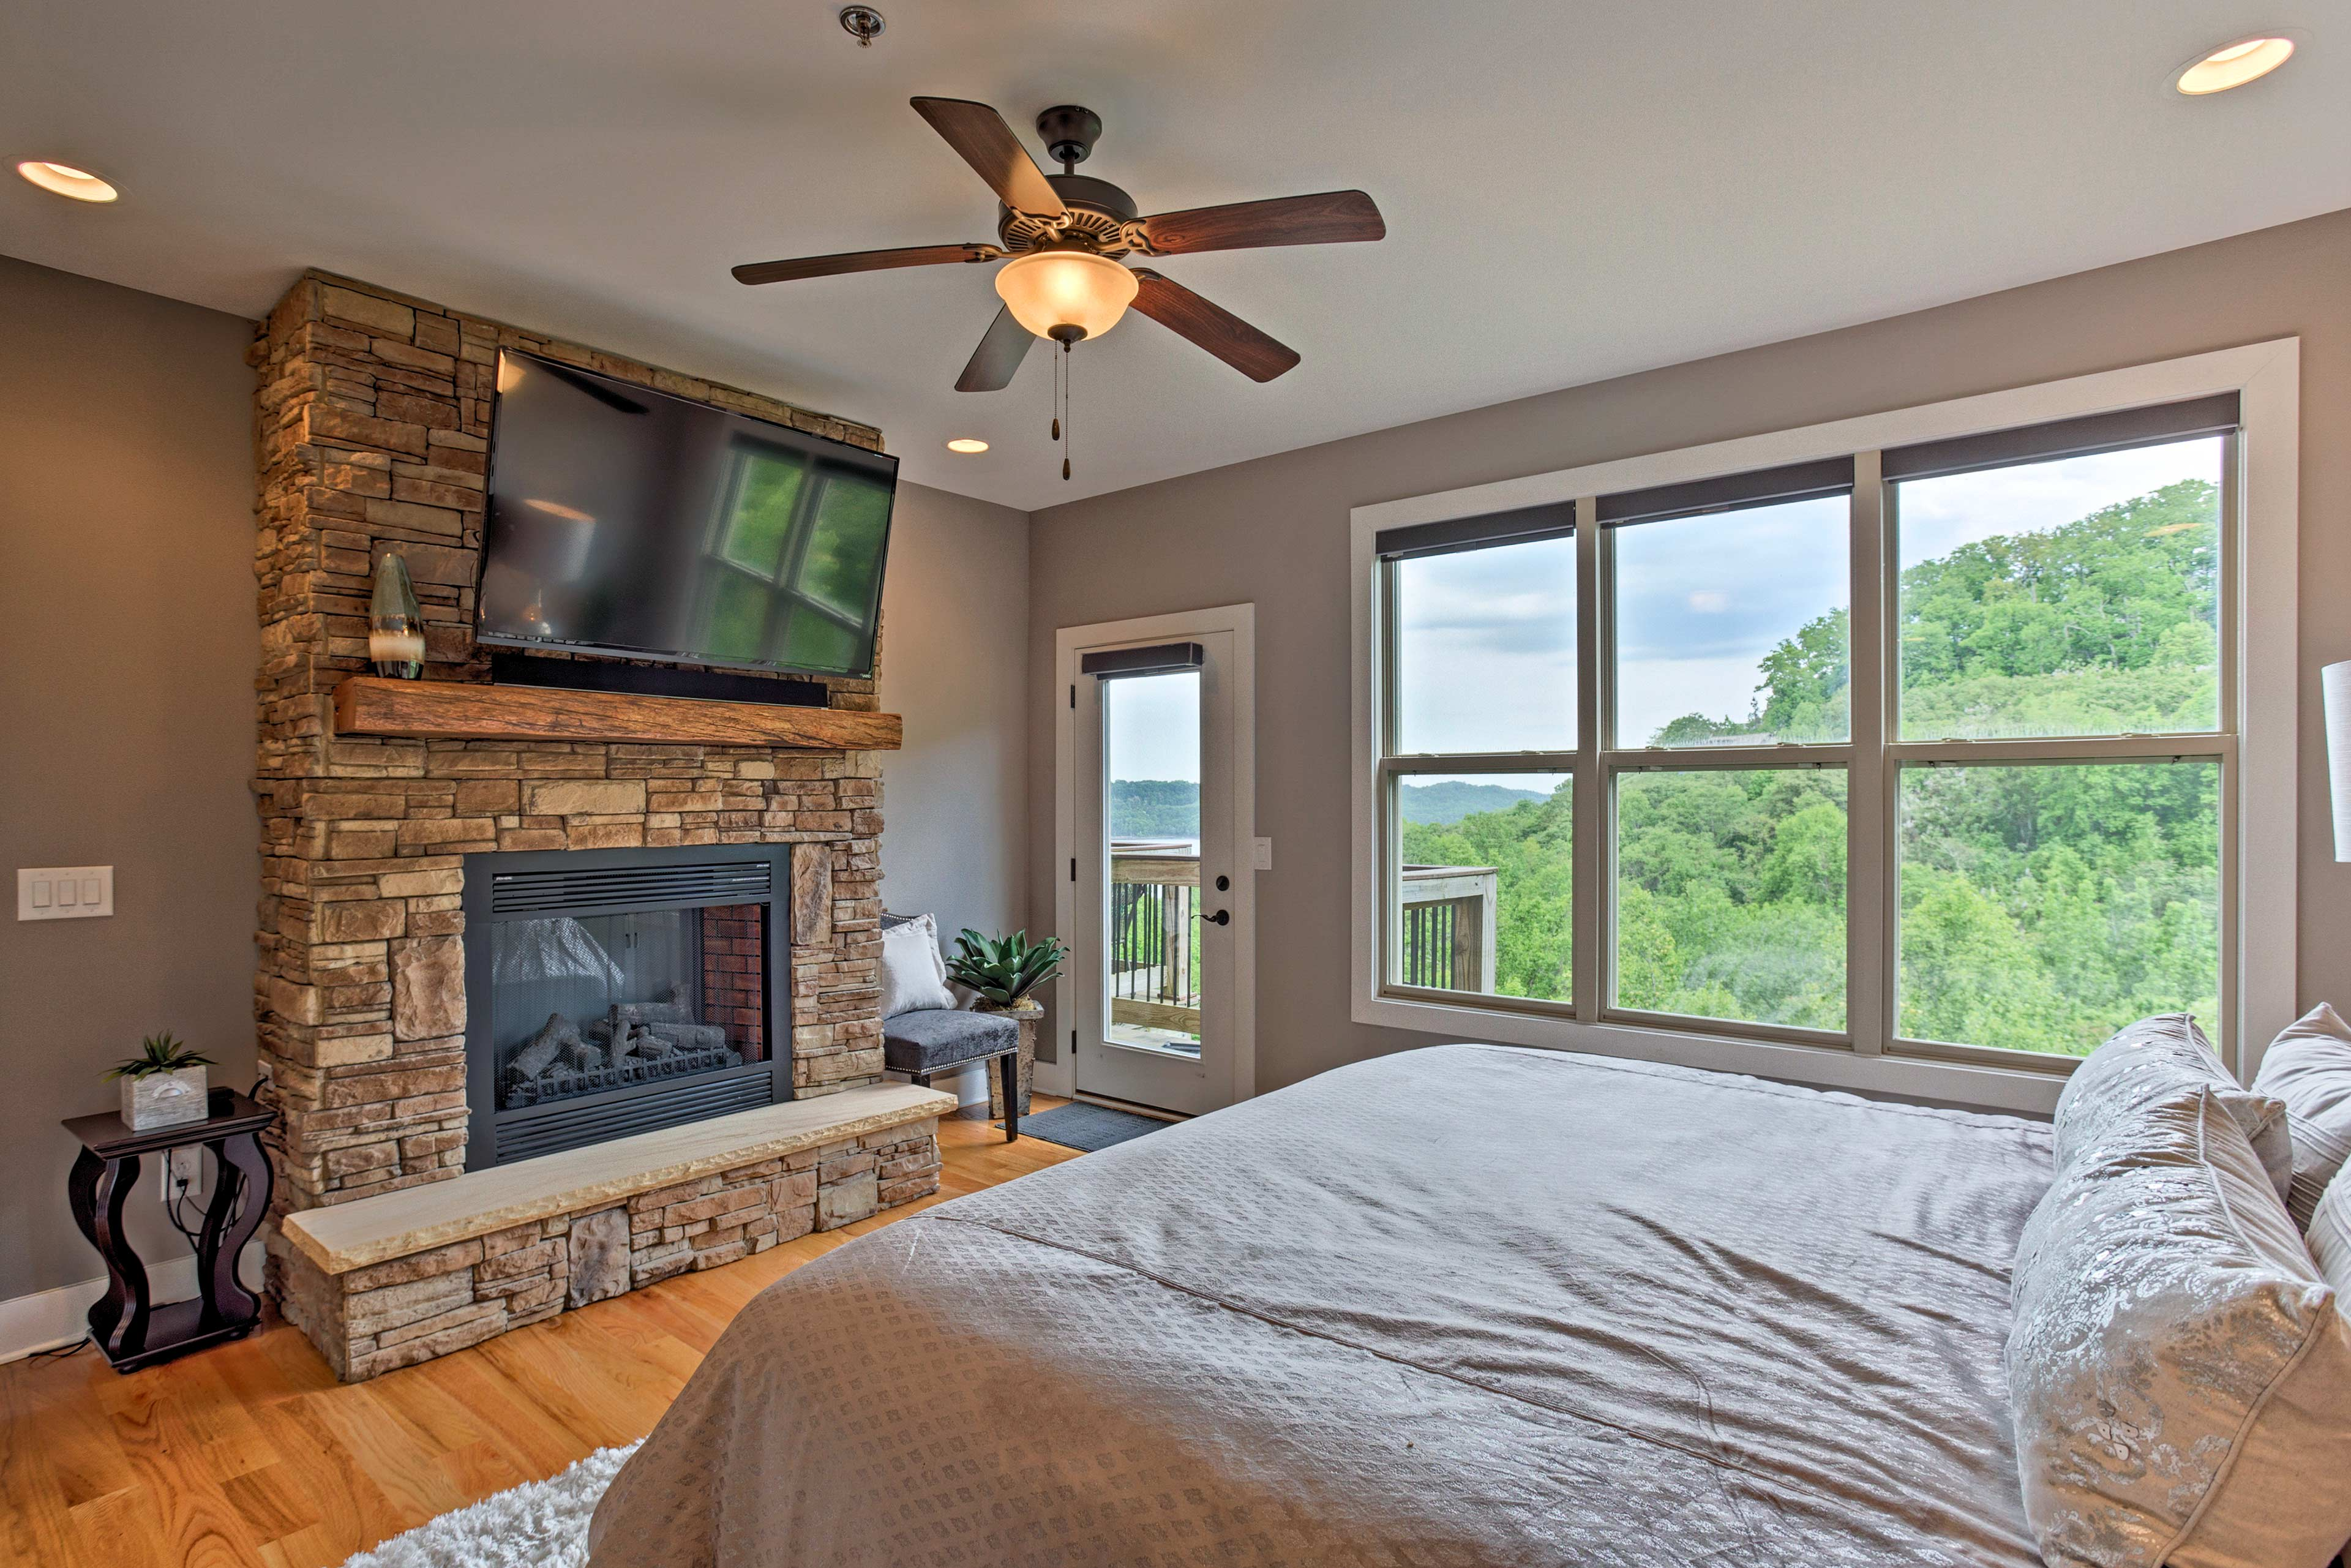 The master suite boasts a fireplace, flat-screen TV, and deck access!